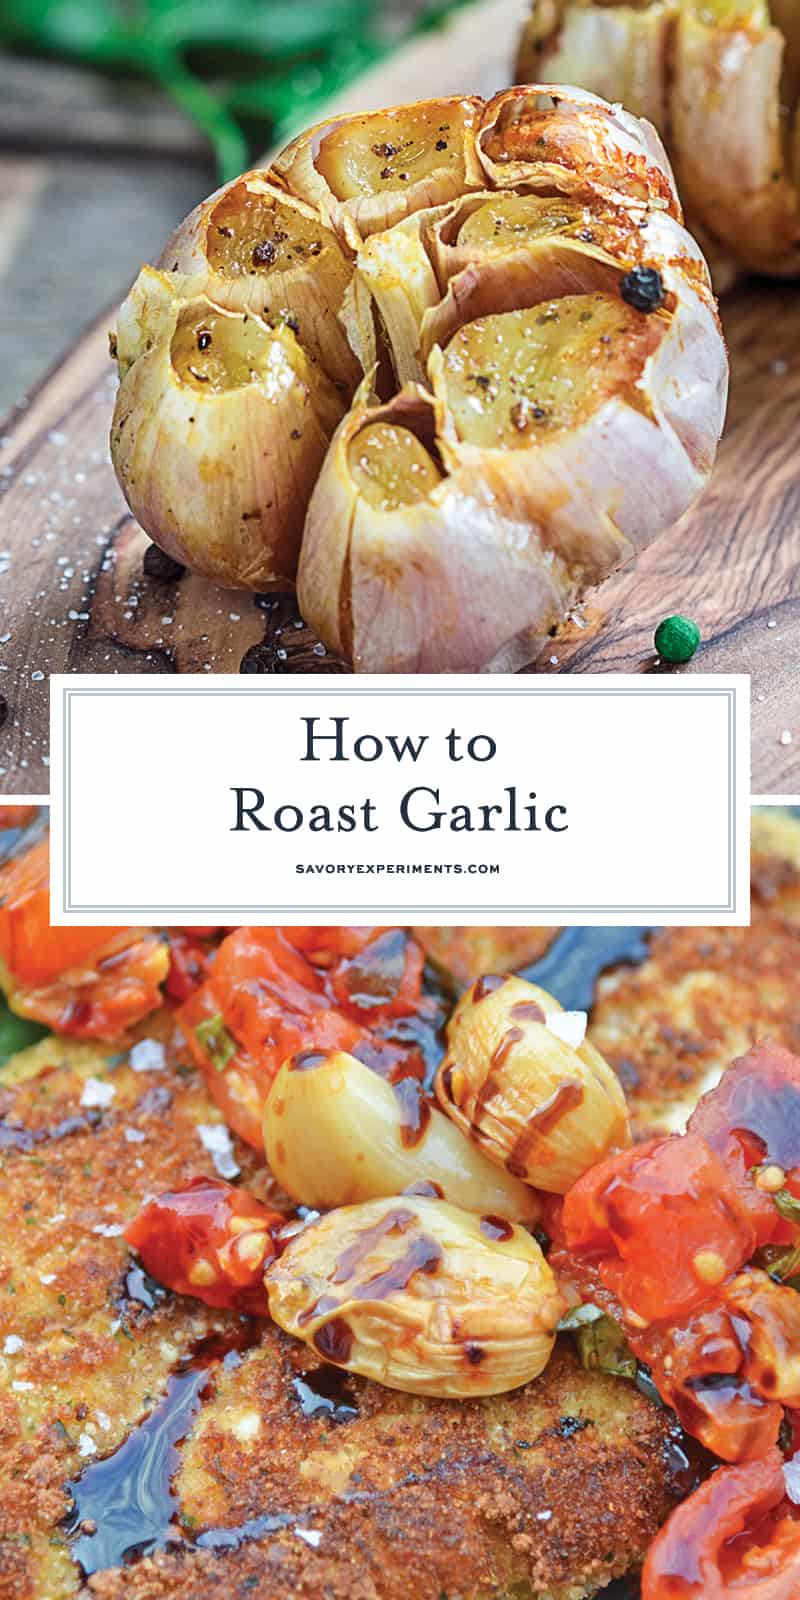 Simple, easy-to-follow steps on how to roast garlic. Roasted Garlic adds a muted, buttery, browned garlicky flavor to any dish that calls for garlic. If can also be served alone on bread or a charcuterie platter. #roastedgarlic #howtoroastgarlic www.savoryexperiments.com